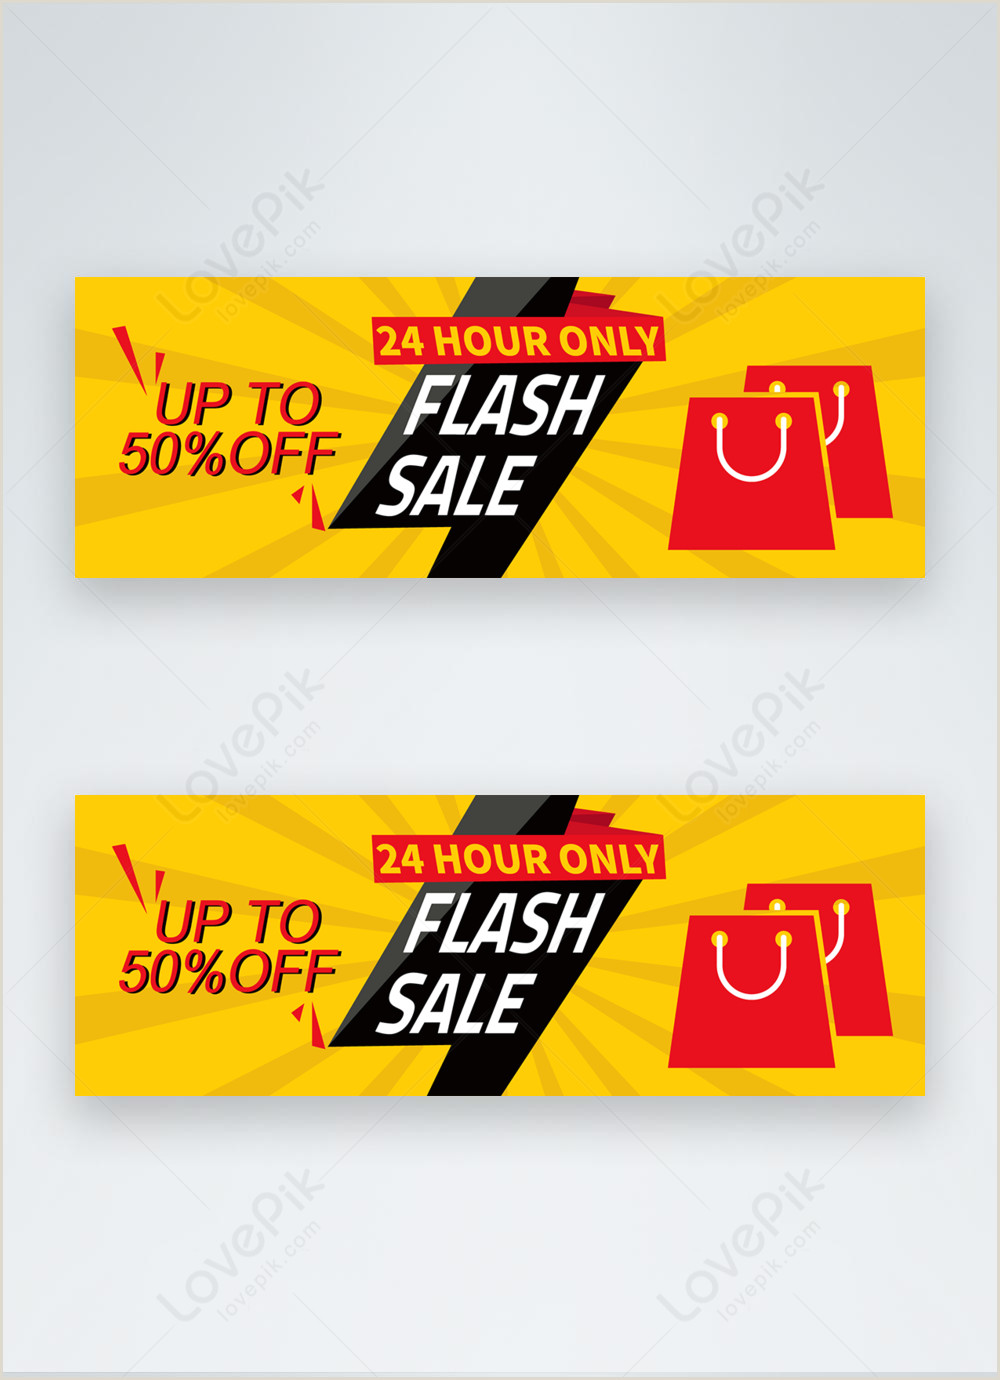 Banners On The Cheap Coupon Code Flash Sale Discount Offer Banner Template Image Picture Free